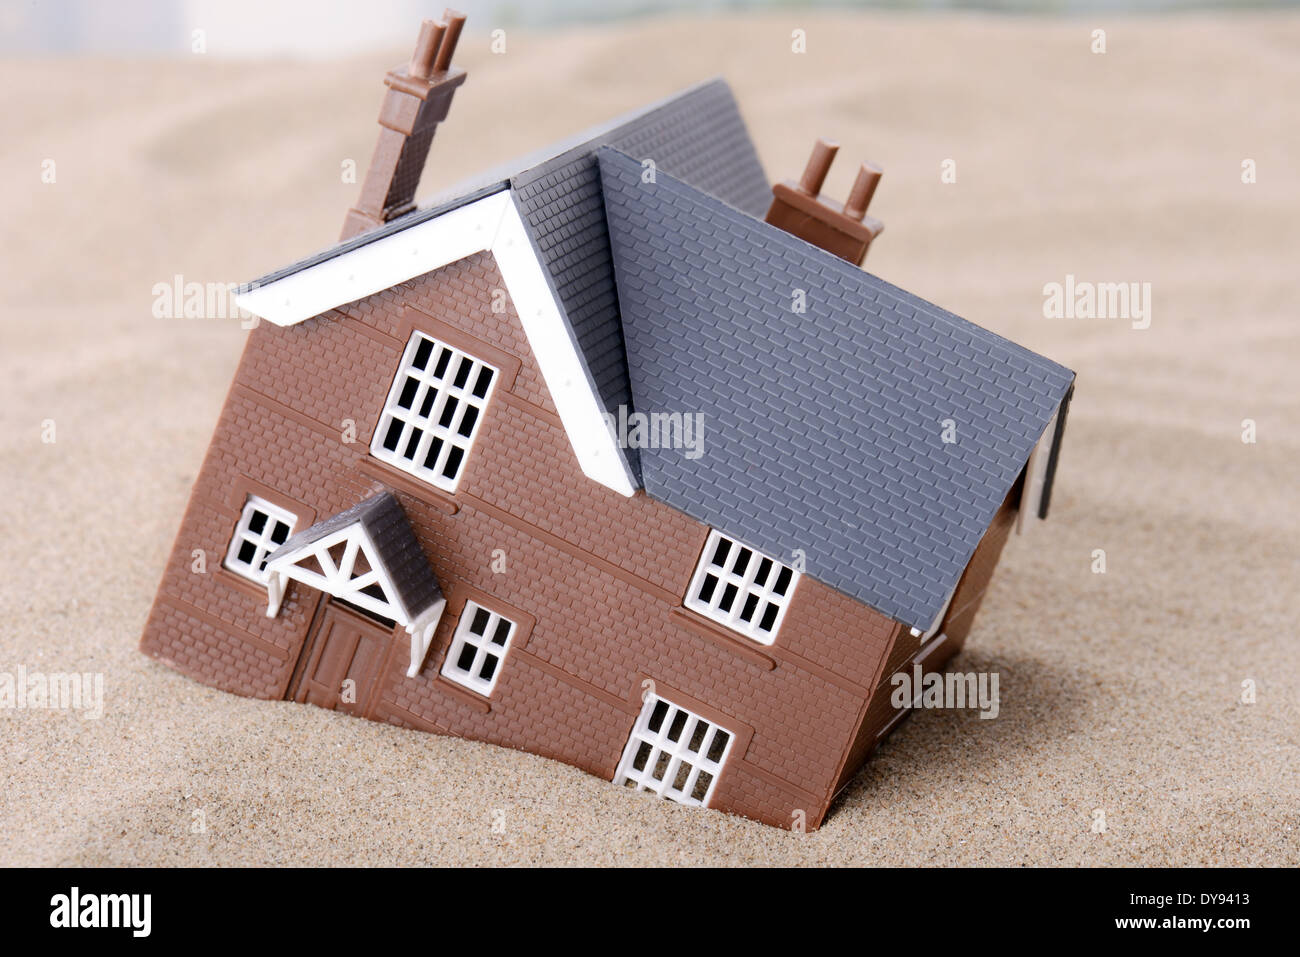 A house sinking in sand, concept for housing problems - Stock Image